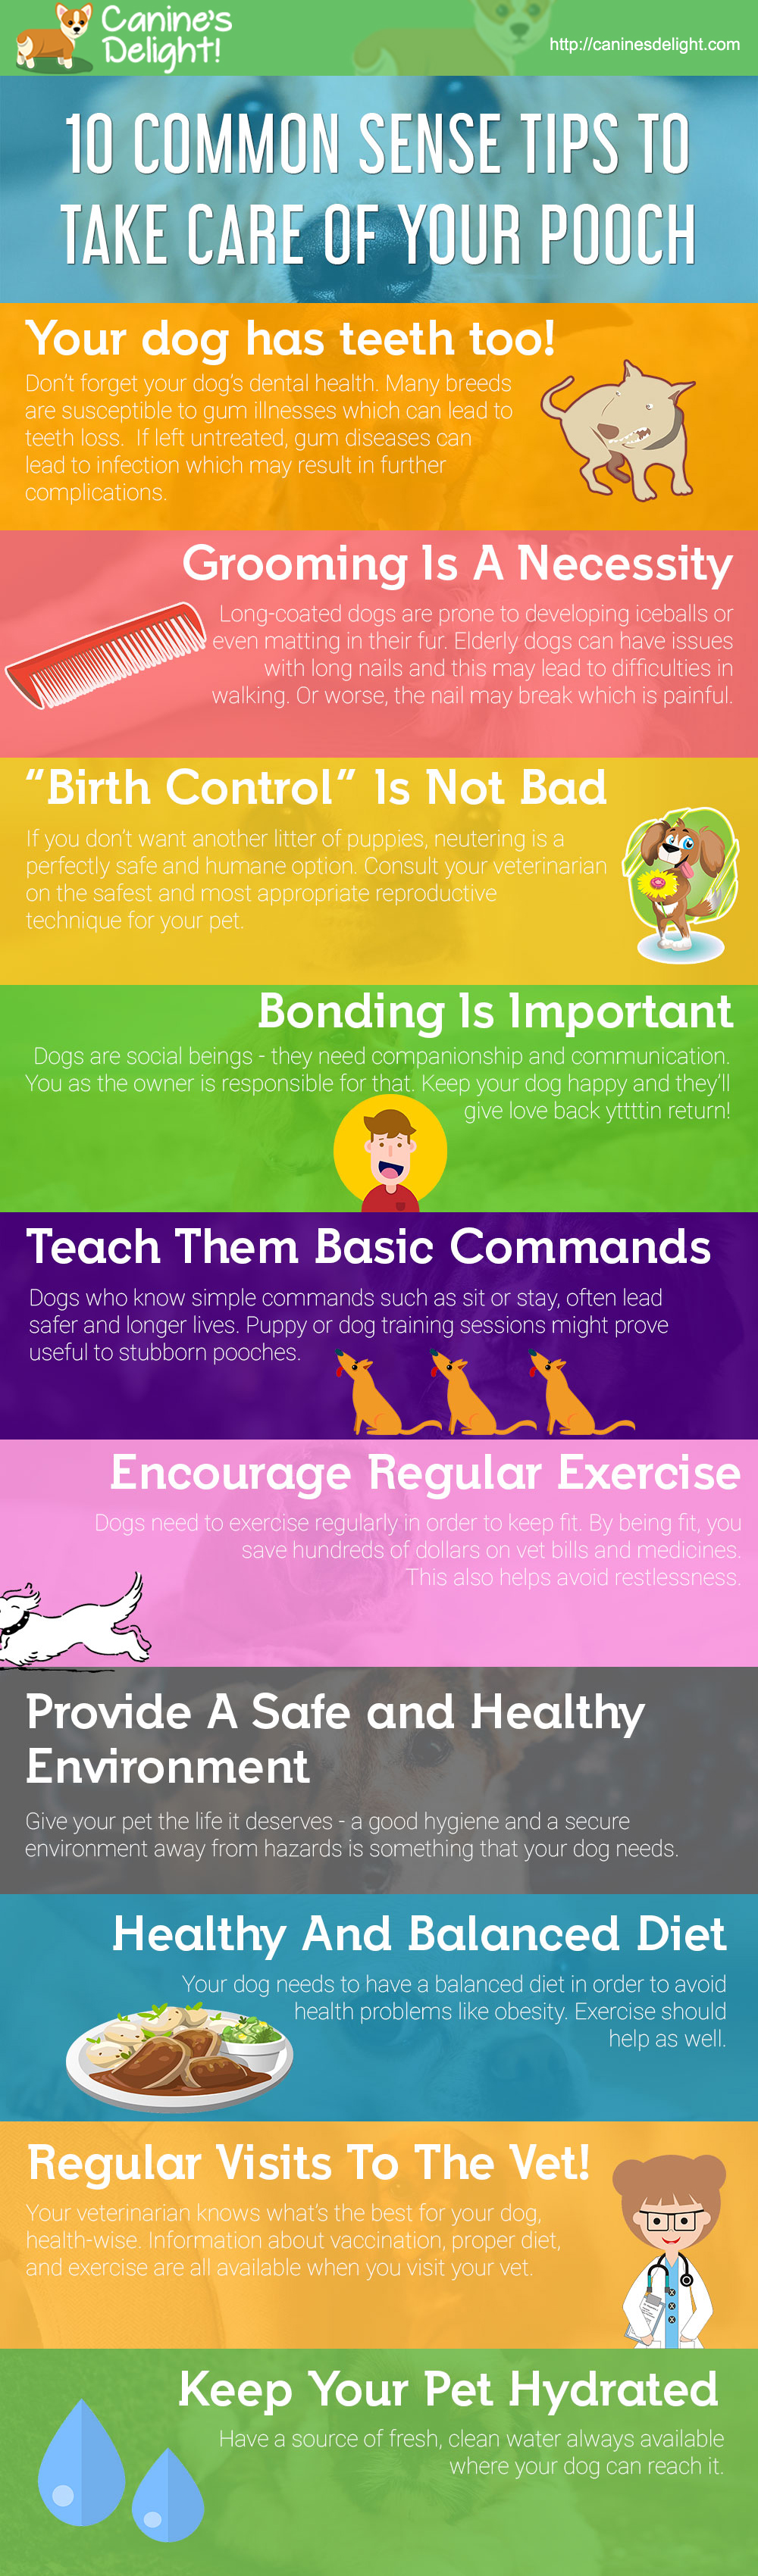 10 common sense tips to take care of your dog